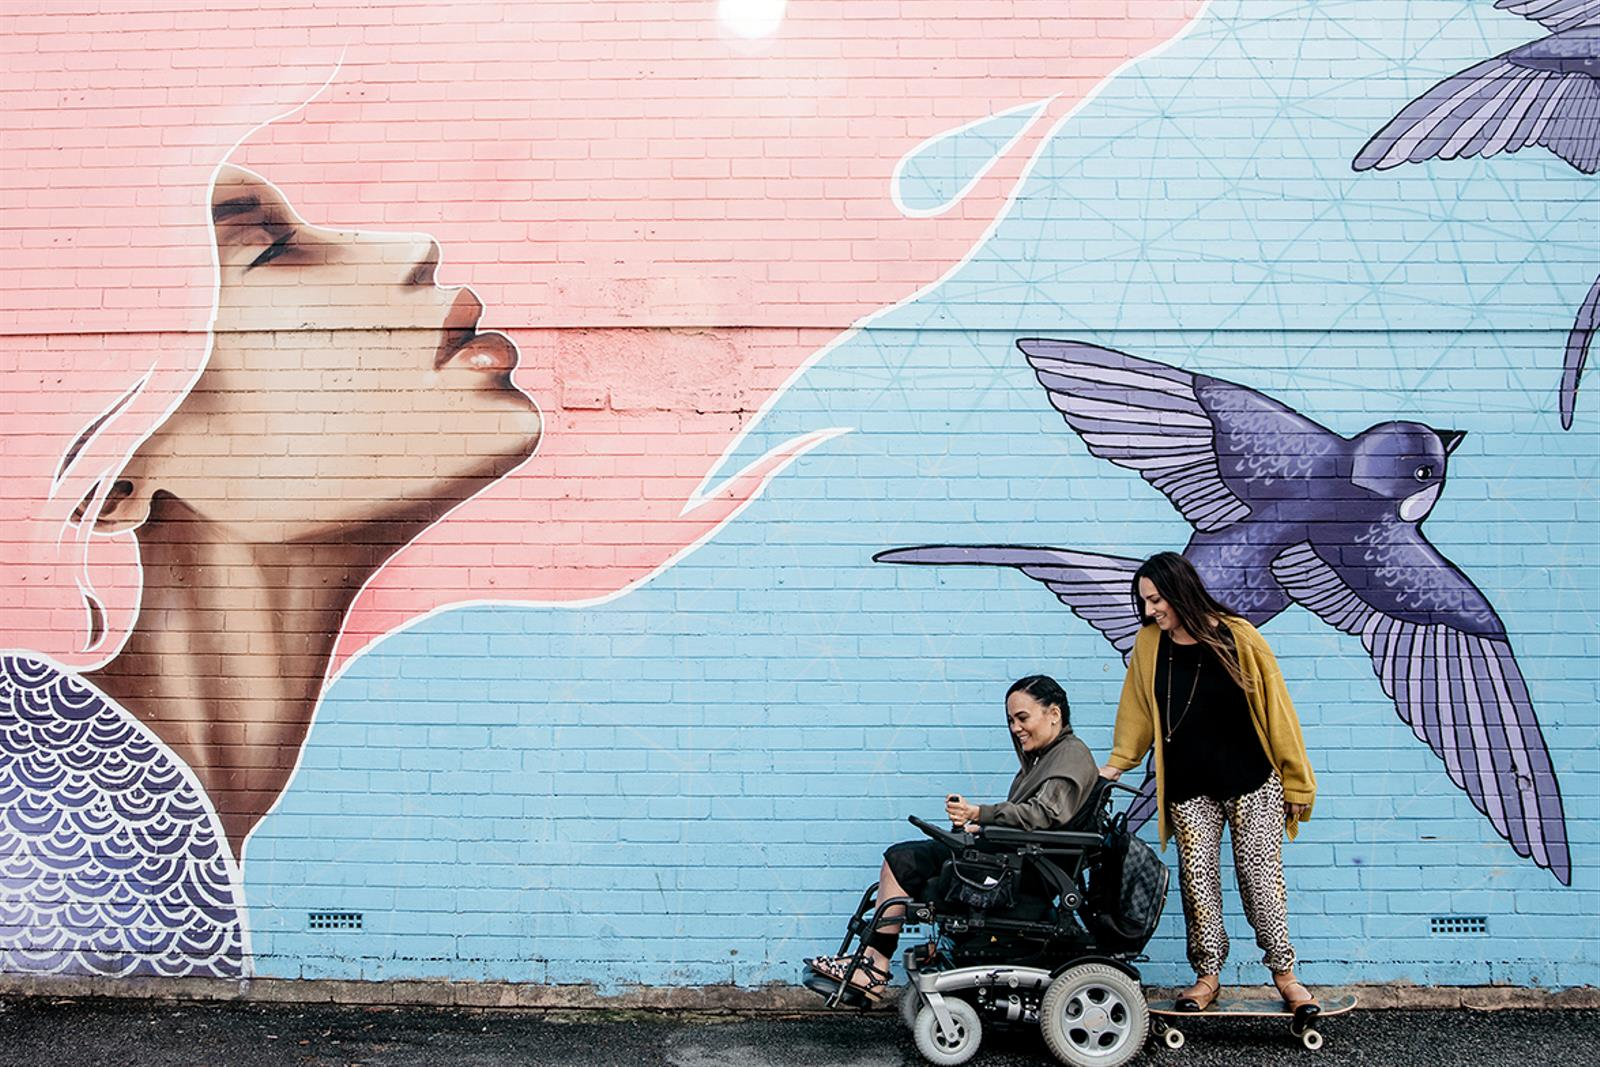 woman on skateboard follows a woman in wheelchair along street in front of bright blue and pink streetart